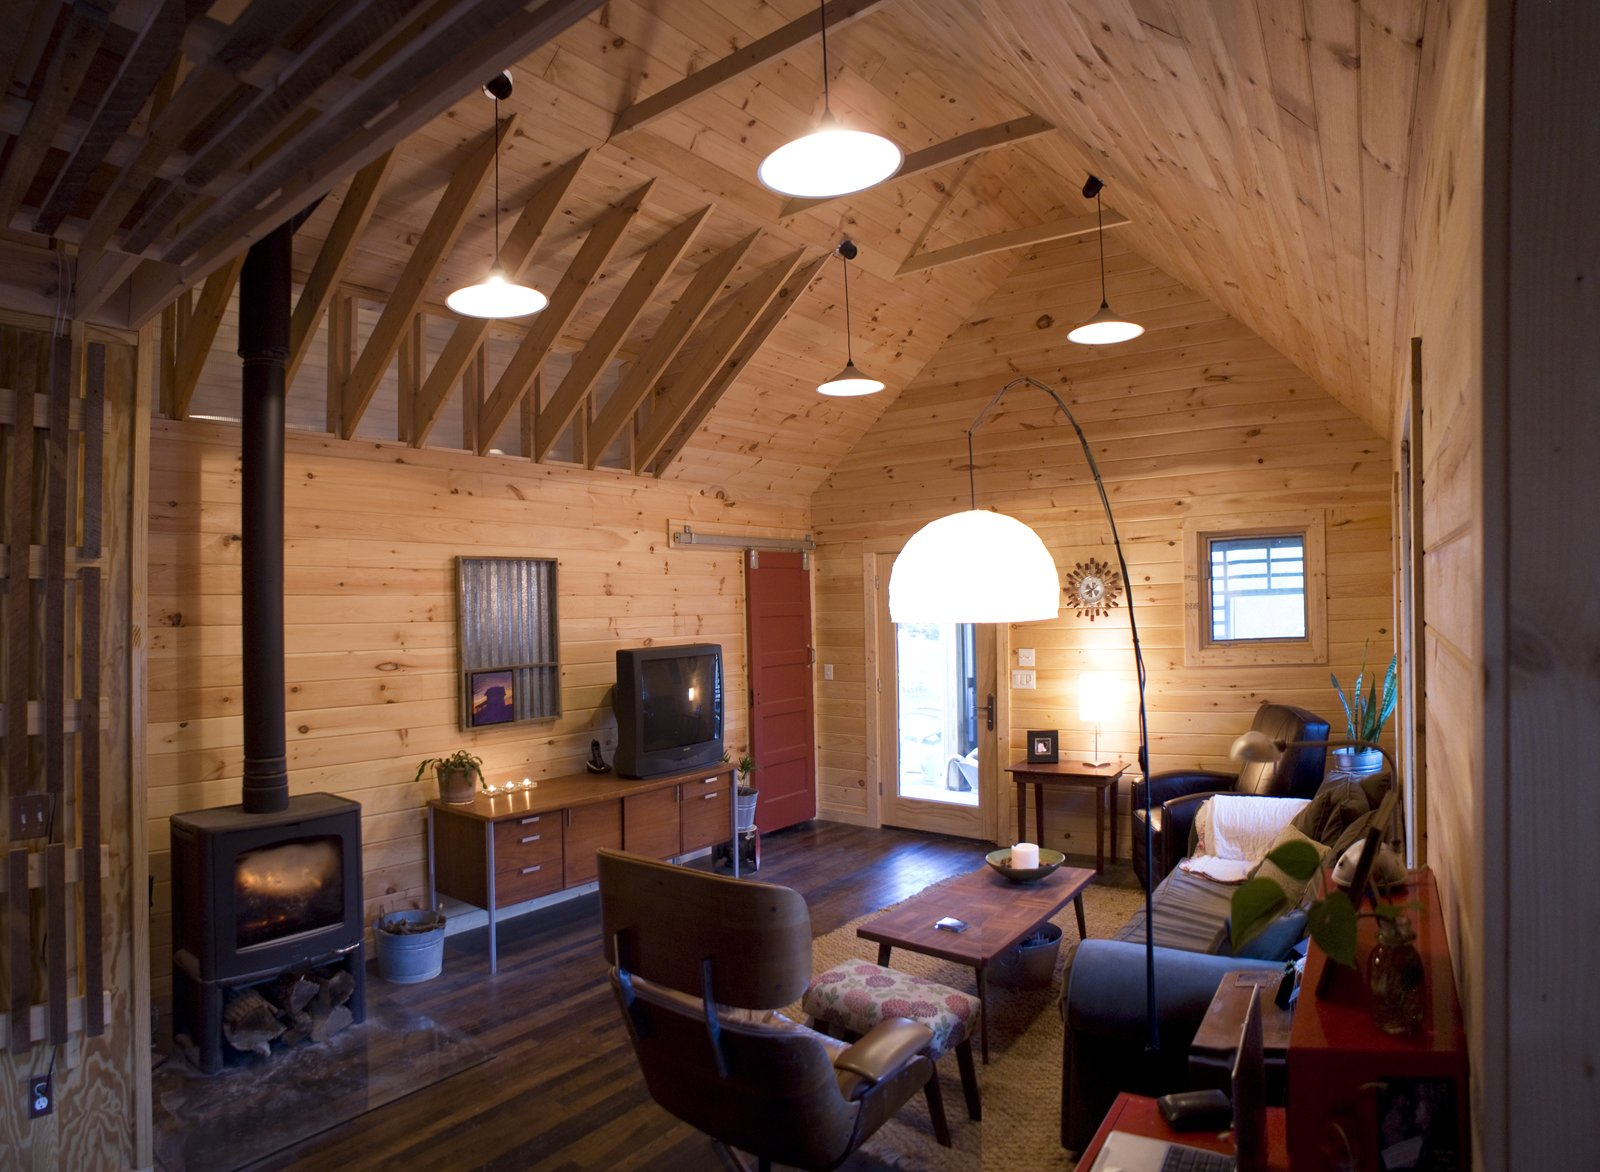 Inside the main living area, tongue-and-grooved white pine covers the walls and vaulted ceilings, and a red closet door, built of salvaged pine from the original house, slides open and closed on barn track hardware. 20 Modern Living Rooms - Photo 5 of 20